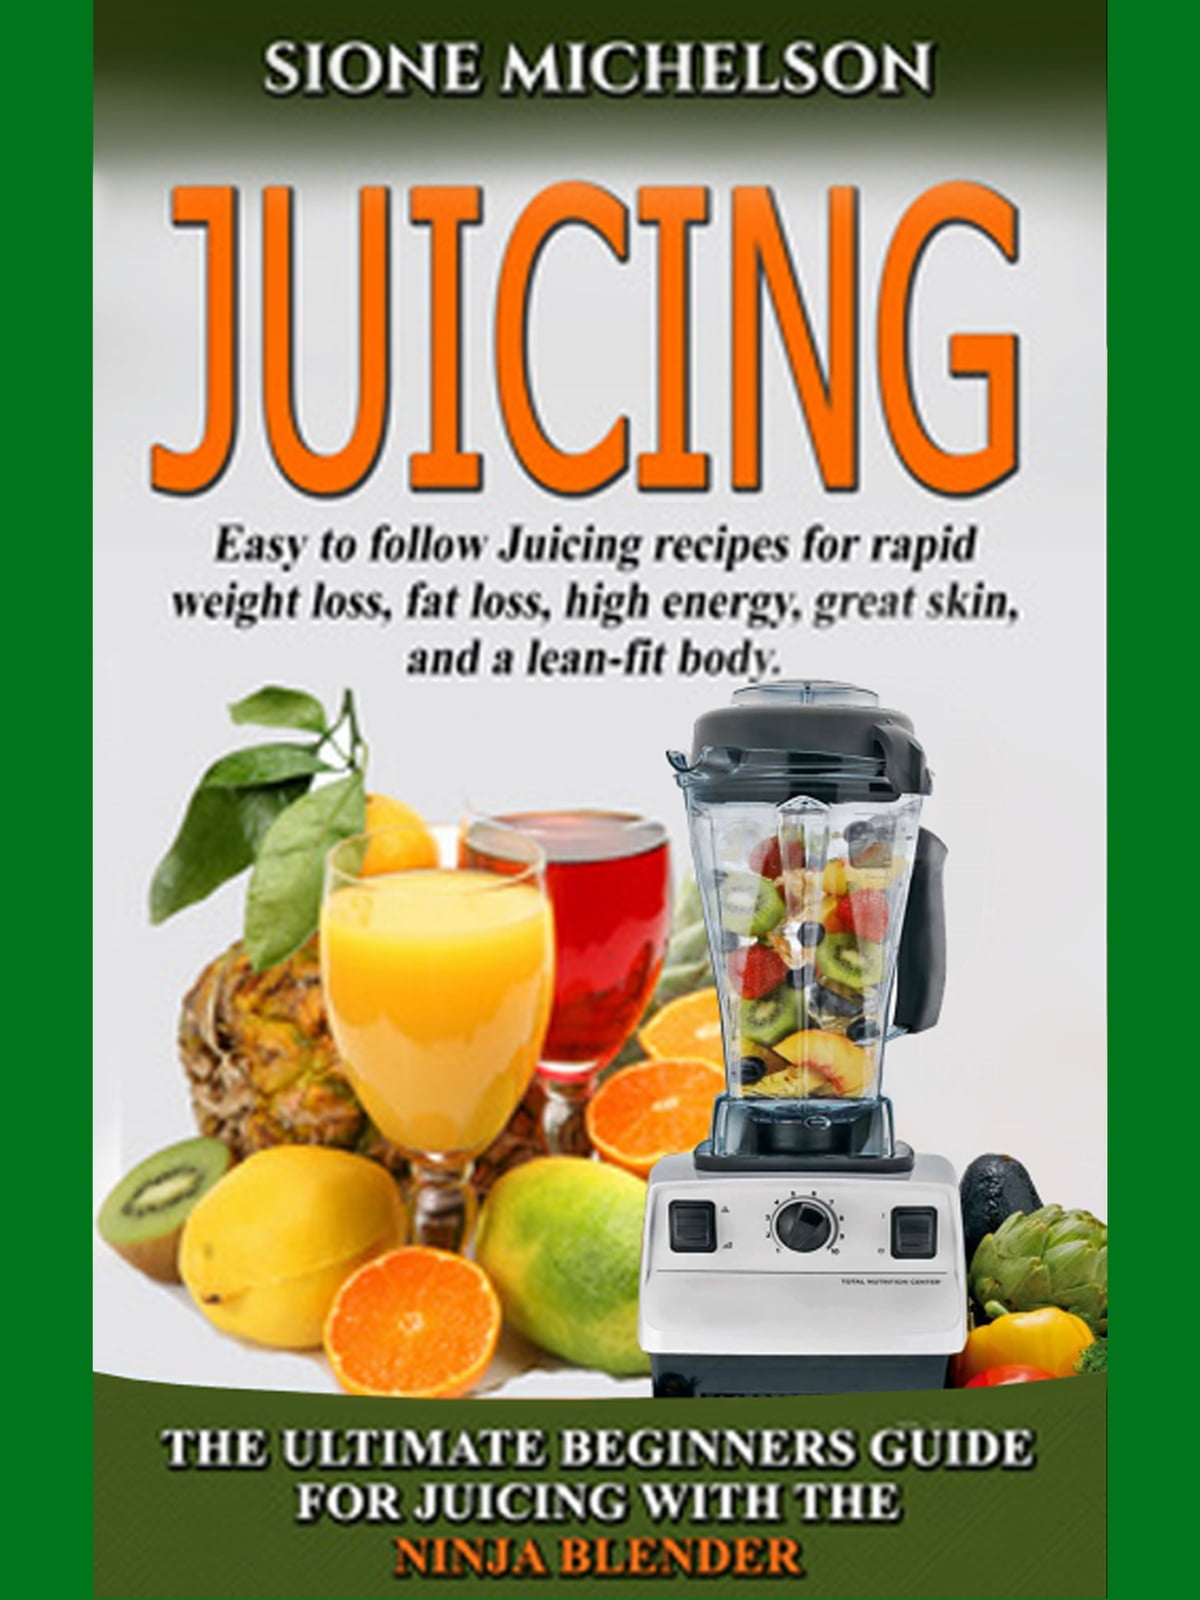 Juicing: The Ultimate Beginners Guide For Juicing With The Ninja Blender &  Nutribullet eBook by Sione Michelson - 9781310562426 | Rakuten Kobo